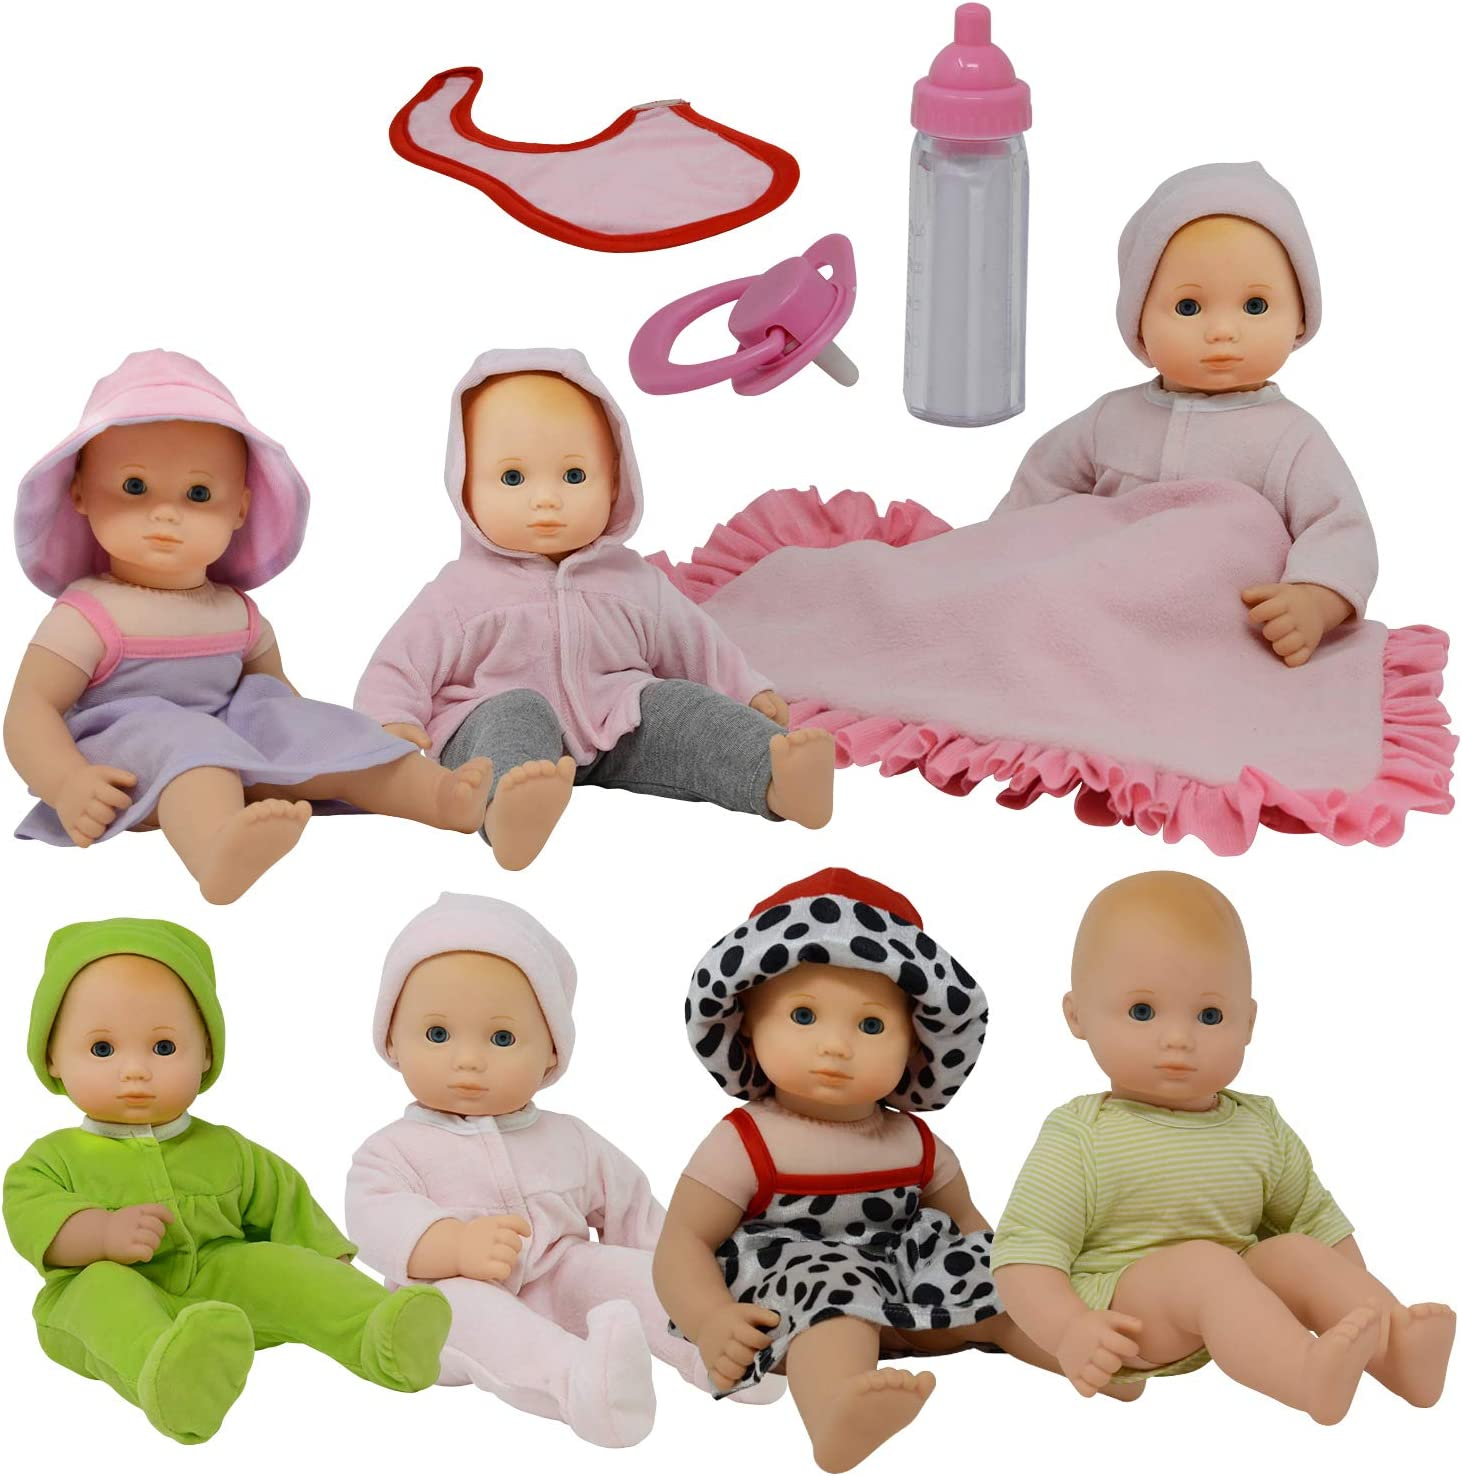 Amazon.com: Baby Doll Clothes New Born Baby Doll Outfits for 14 15 and 16 inch  Dolls Includes Doll Accessories Bottle, Pacifier, Blanket and Sets of  Clothing: Toys & Games